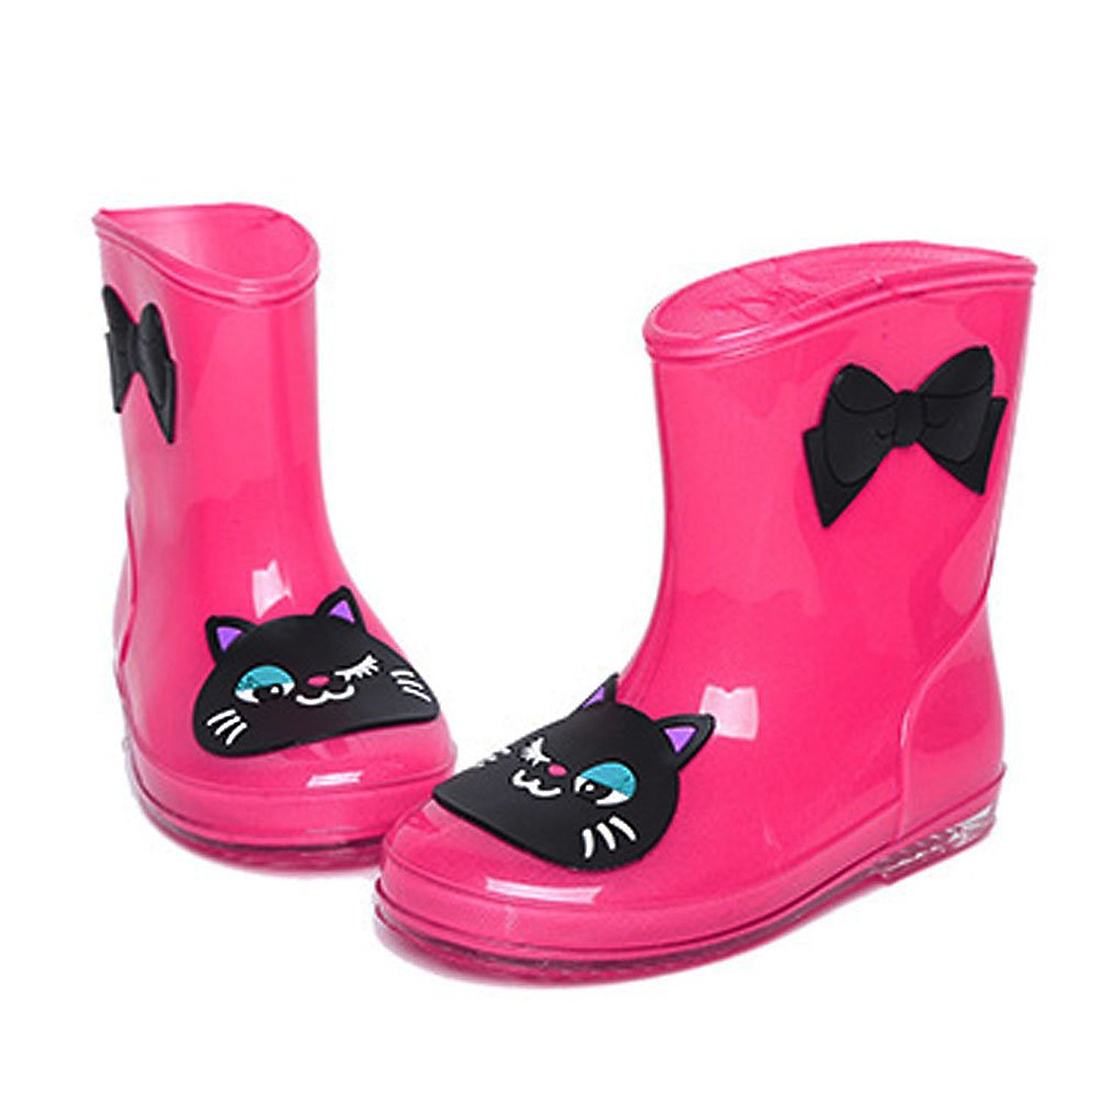 Compare Prices on Cute Boots for Girls- Online Shopping/Buy Low ...